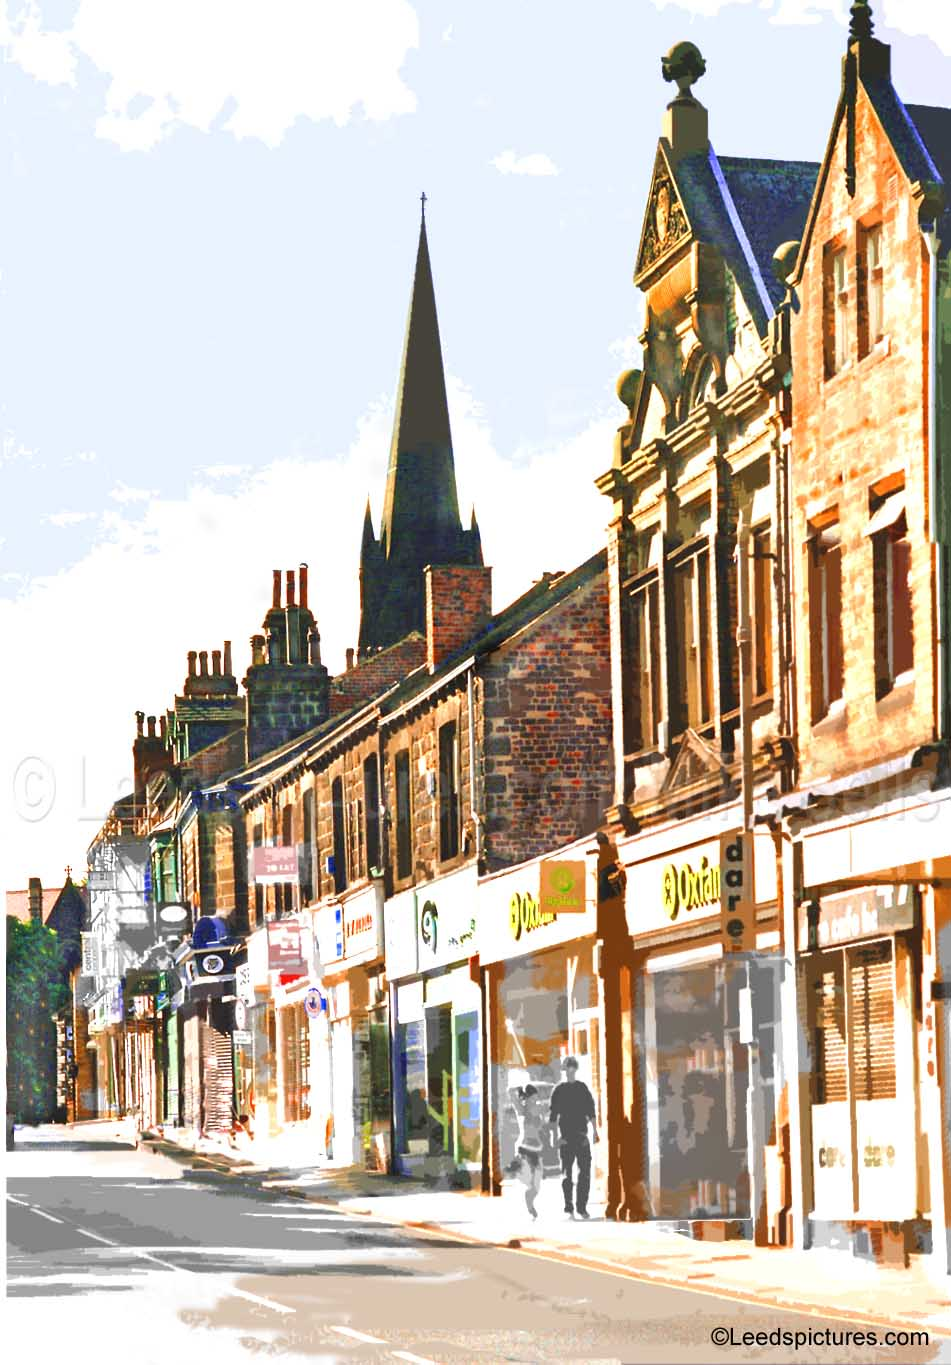 Headingley shops, Oxfam, St Michael's spire    Very early on a Sunday morning - where were the couple going?